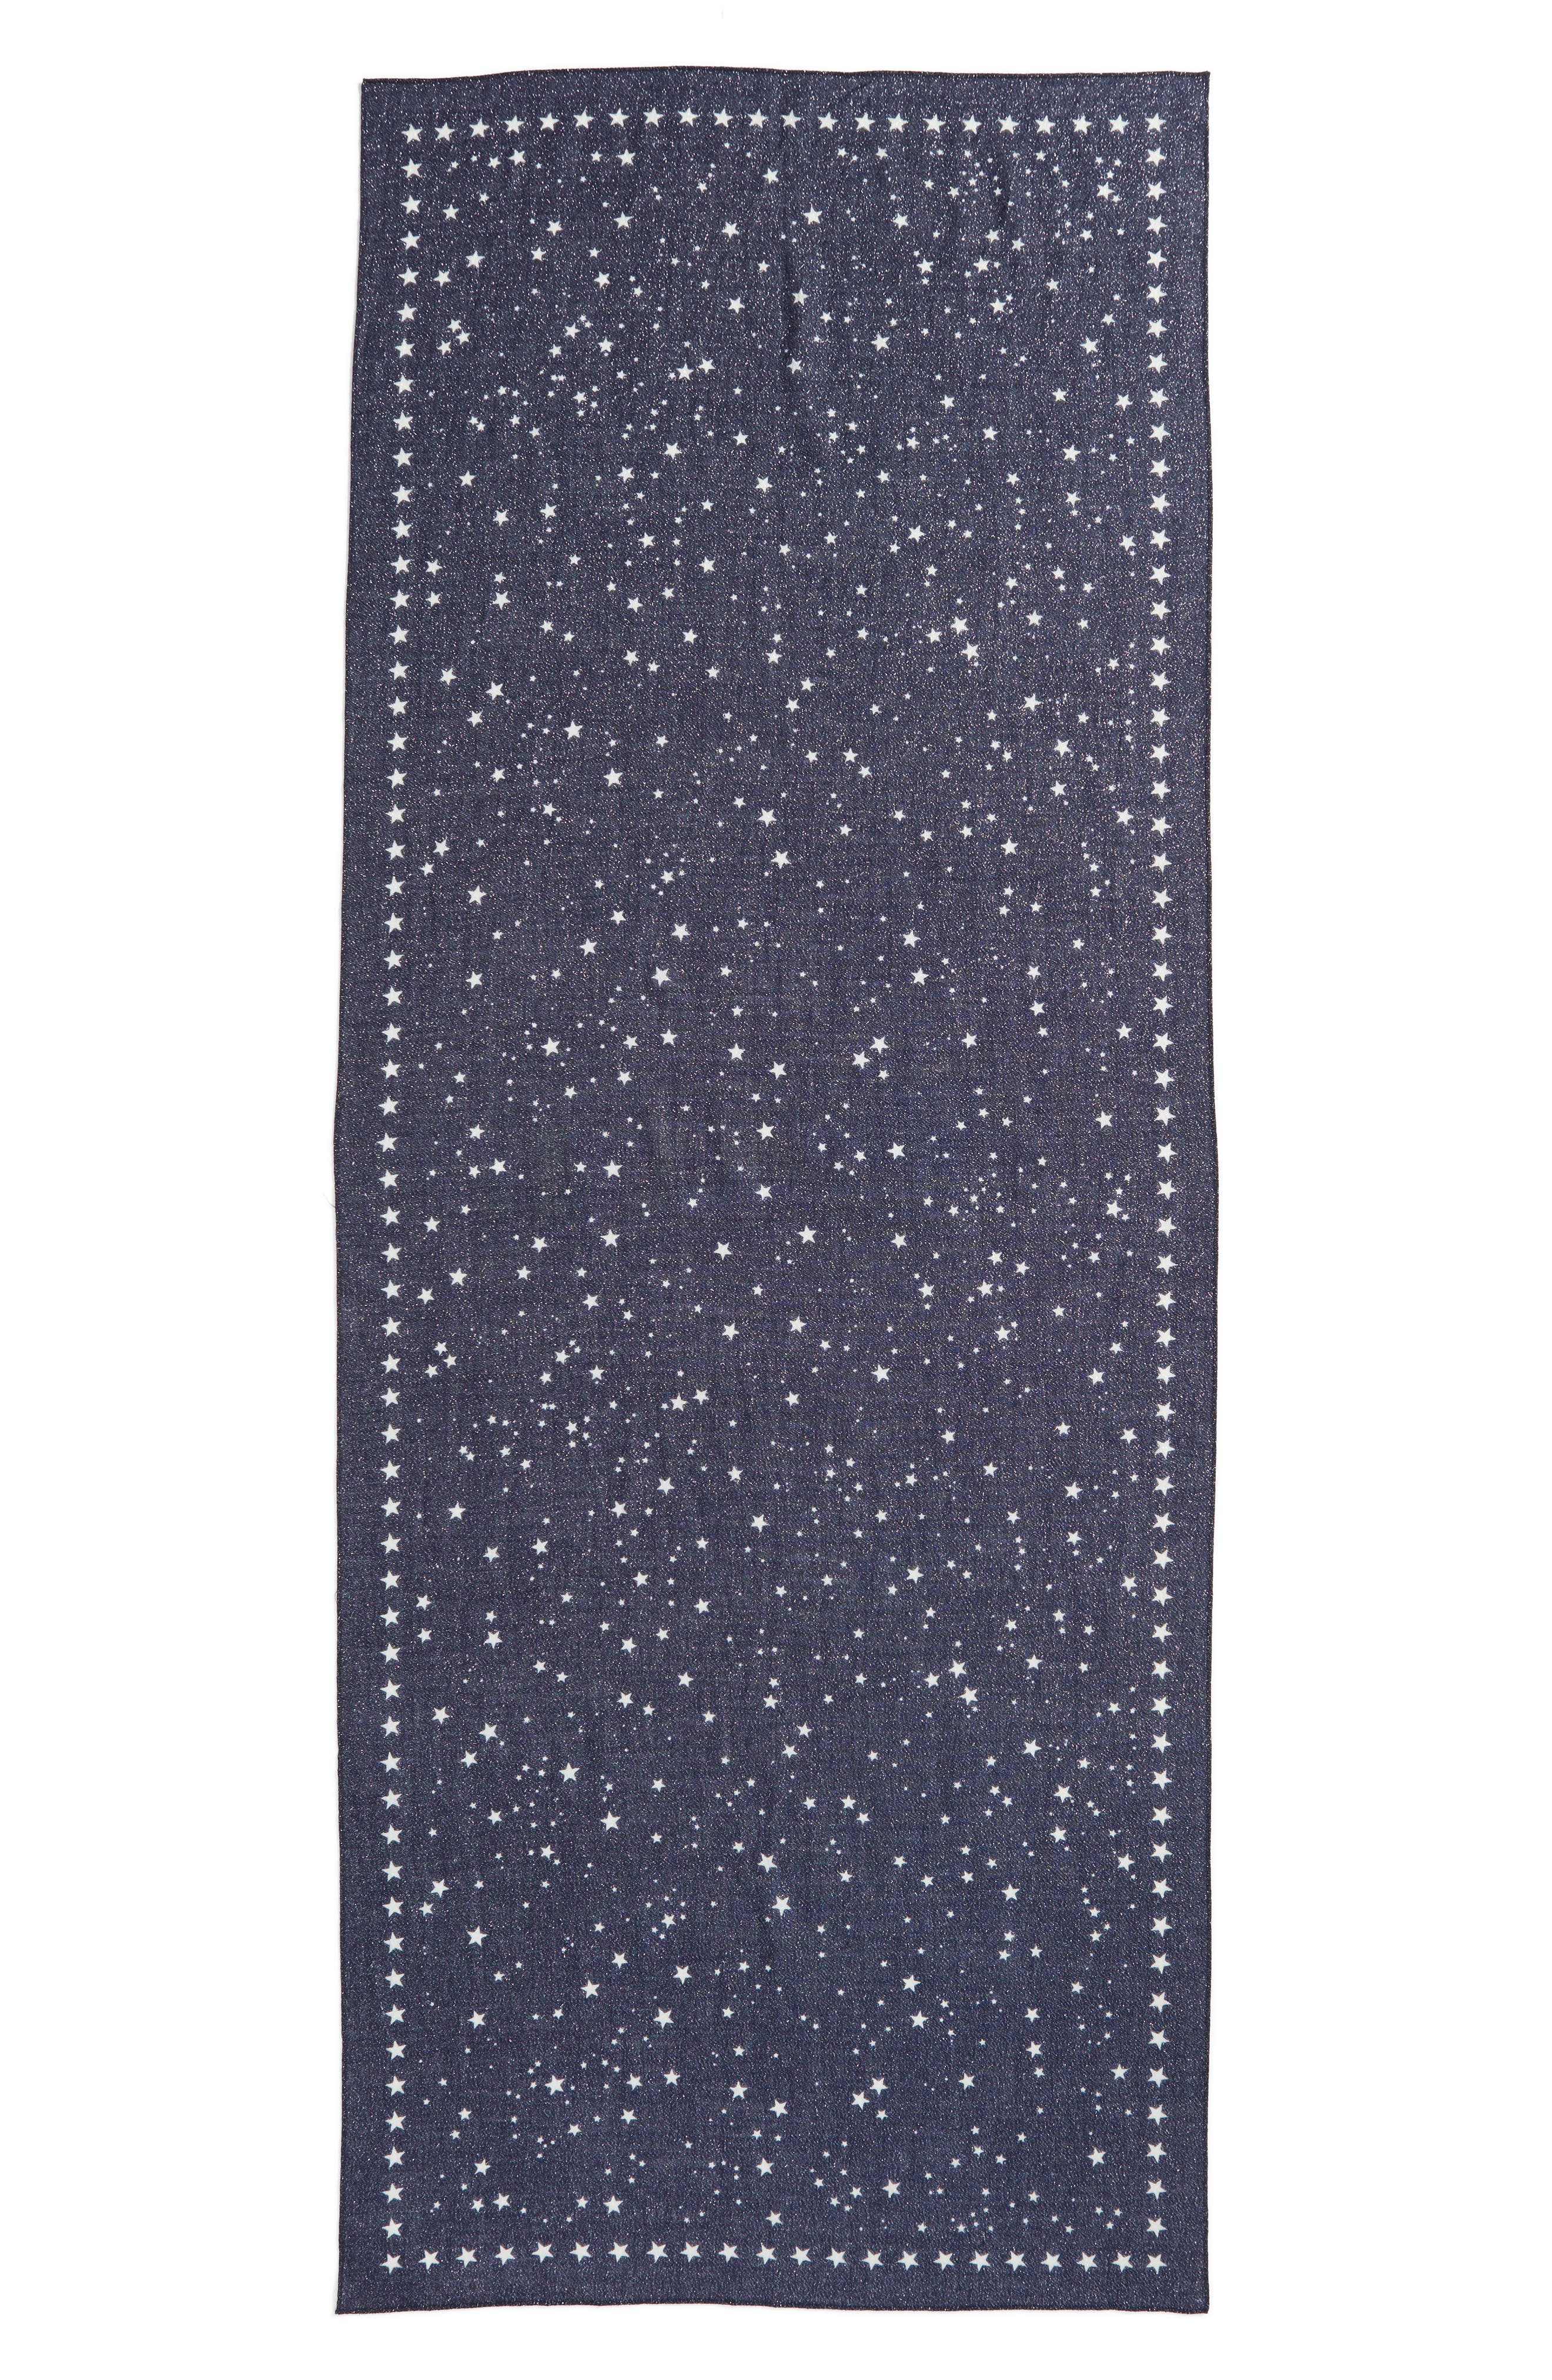 night sky wool blend scarf,                             Alternate thumbnail 3, color,                             415